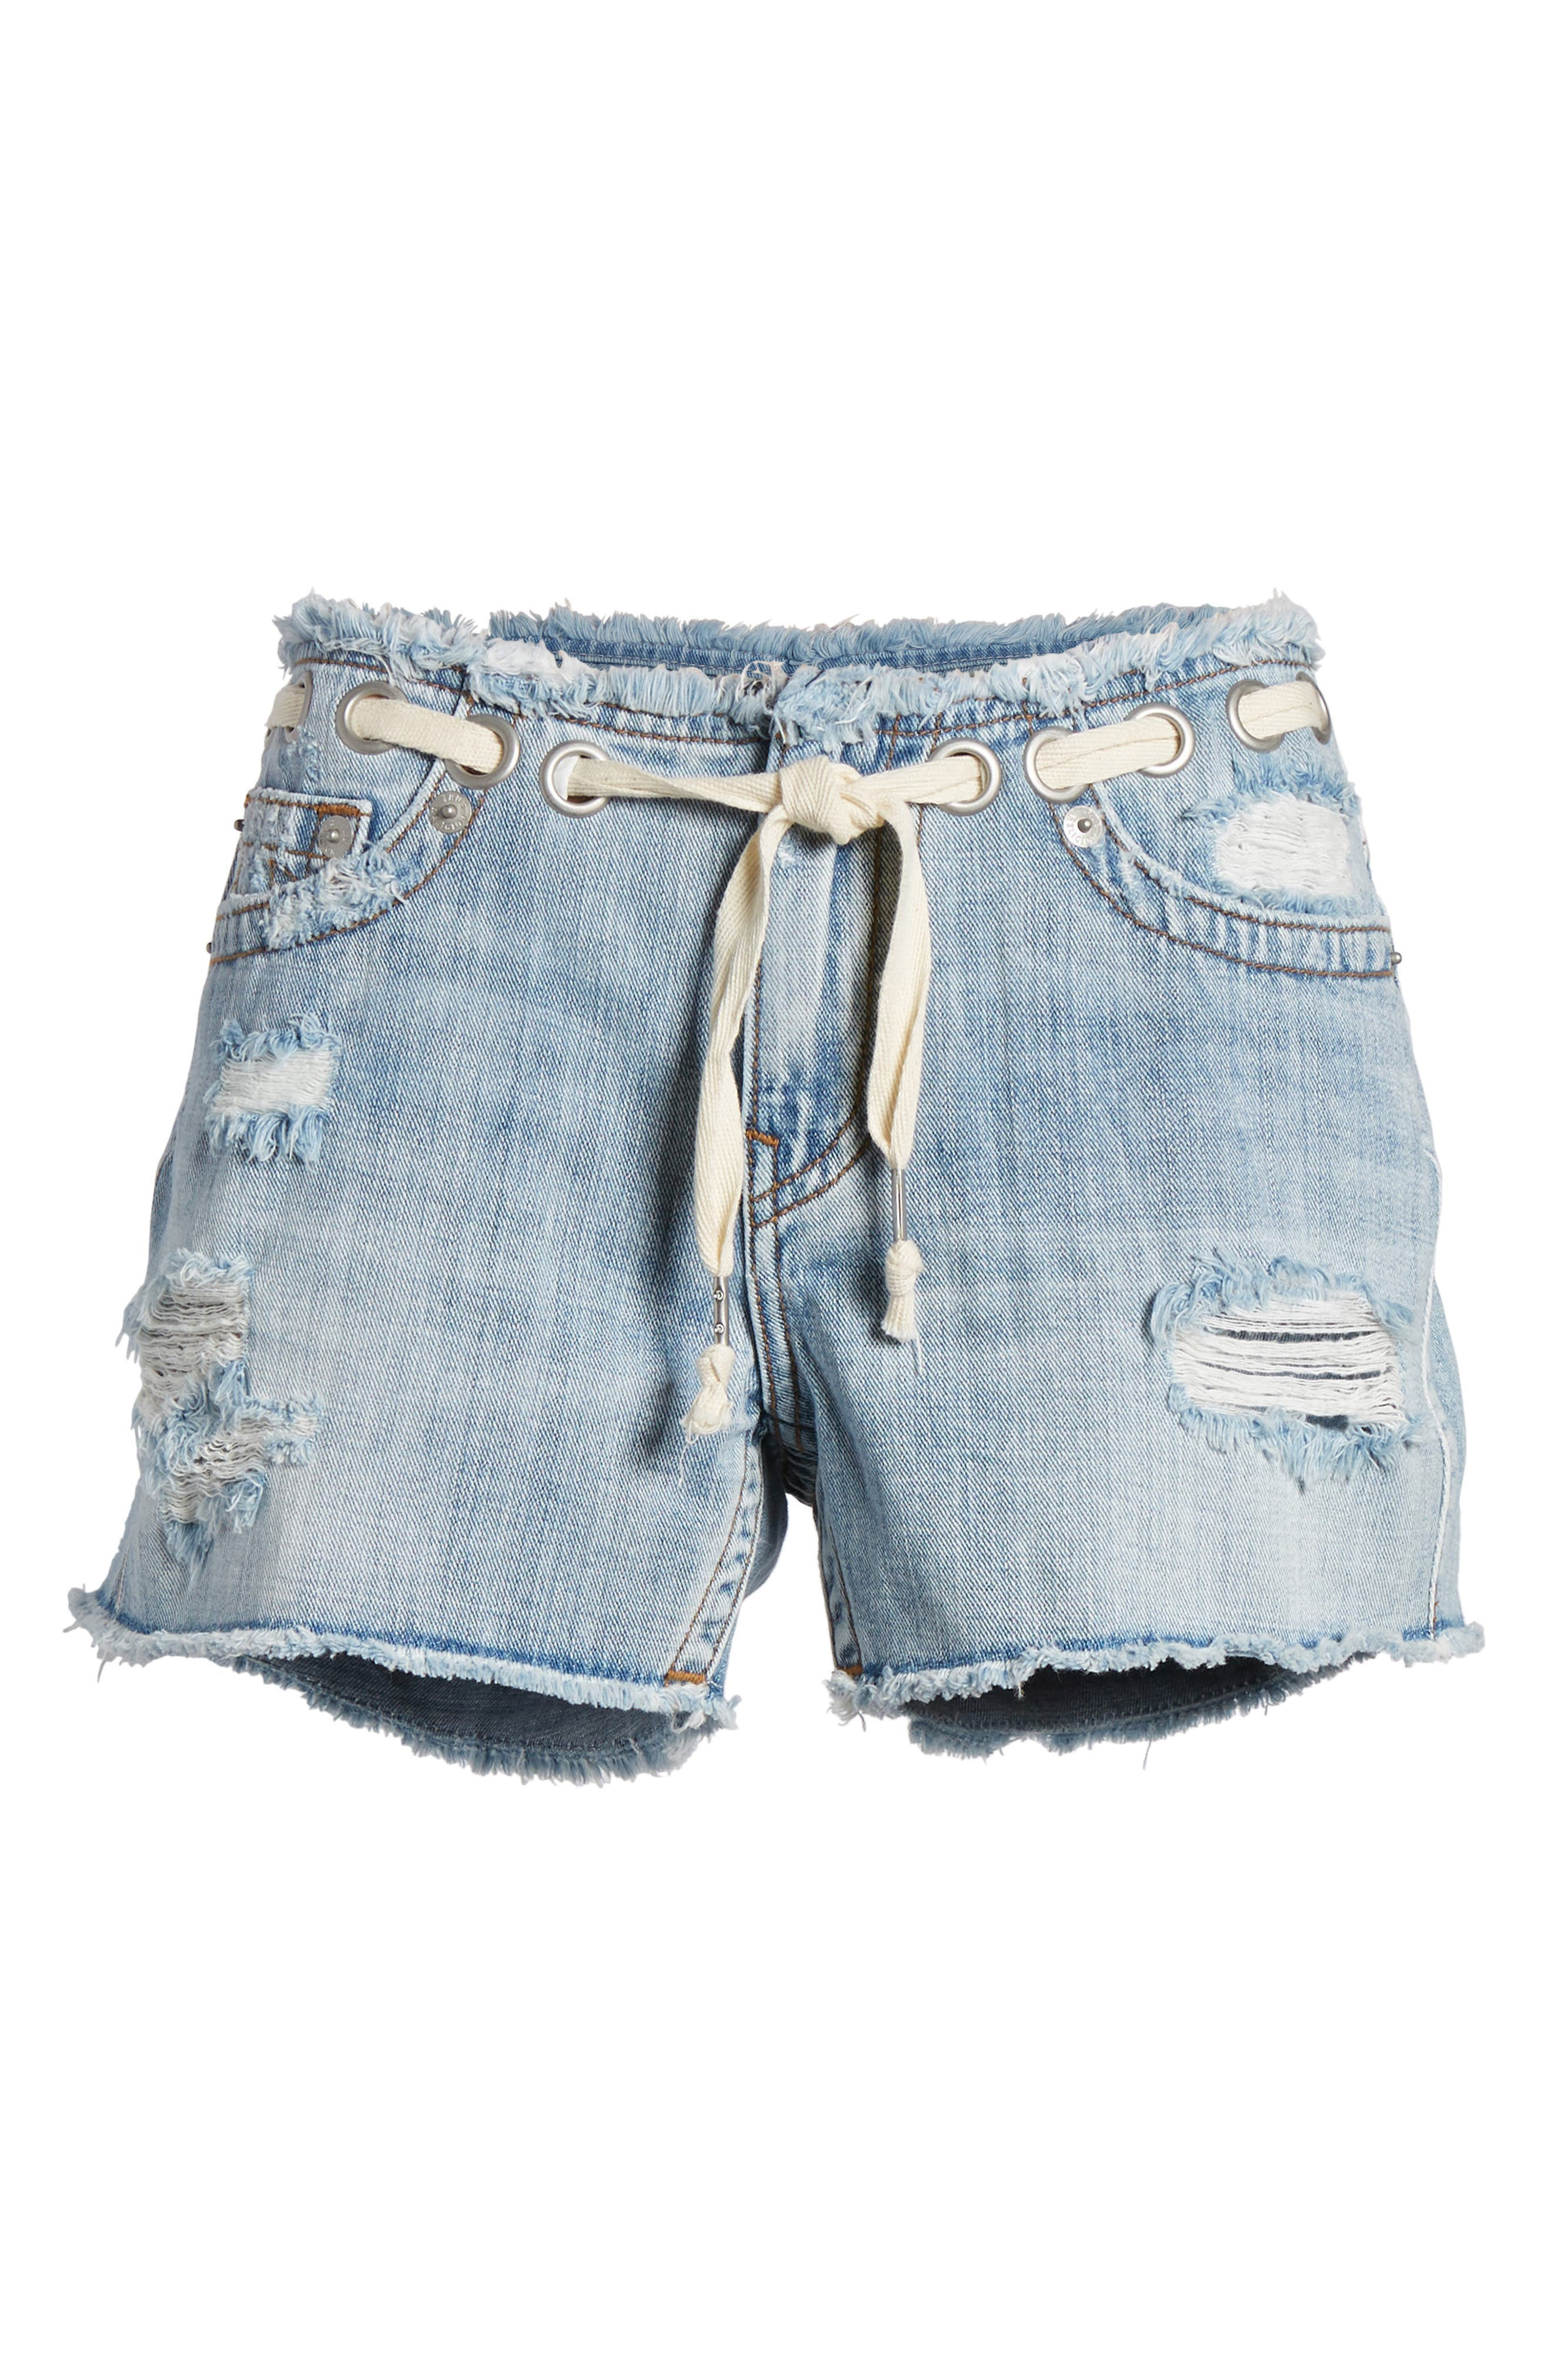 Fashion Distressed Denim Shorts,                             Alternate thumbnail 7, color,                             Ersl Baseline Destroy